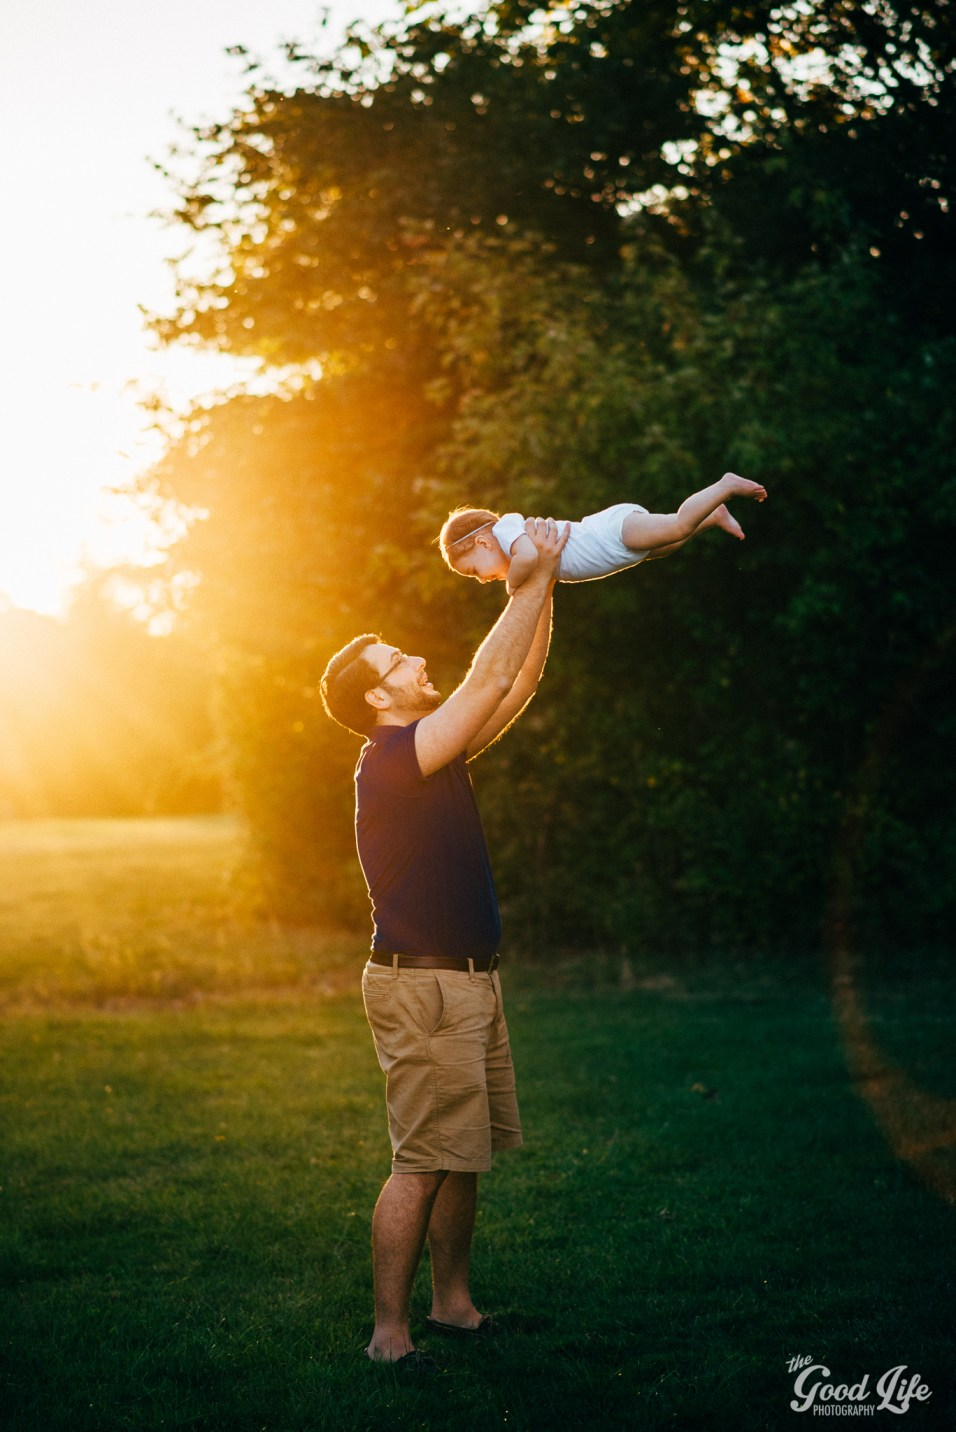 Family Photography Cleveland Ohio by Virginia Greuloch of The Good Life Photography-32